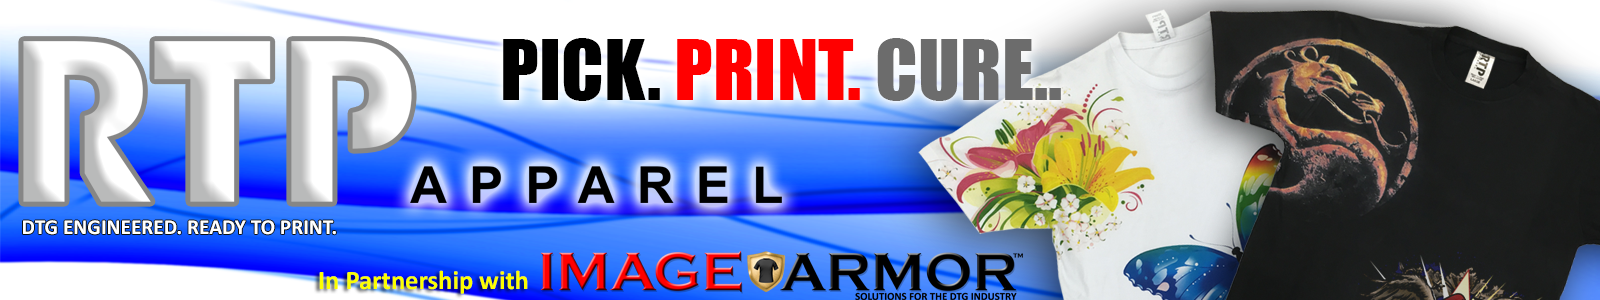 RTP Apparel in Partnership with Image Armor - No More DTG Pretreating